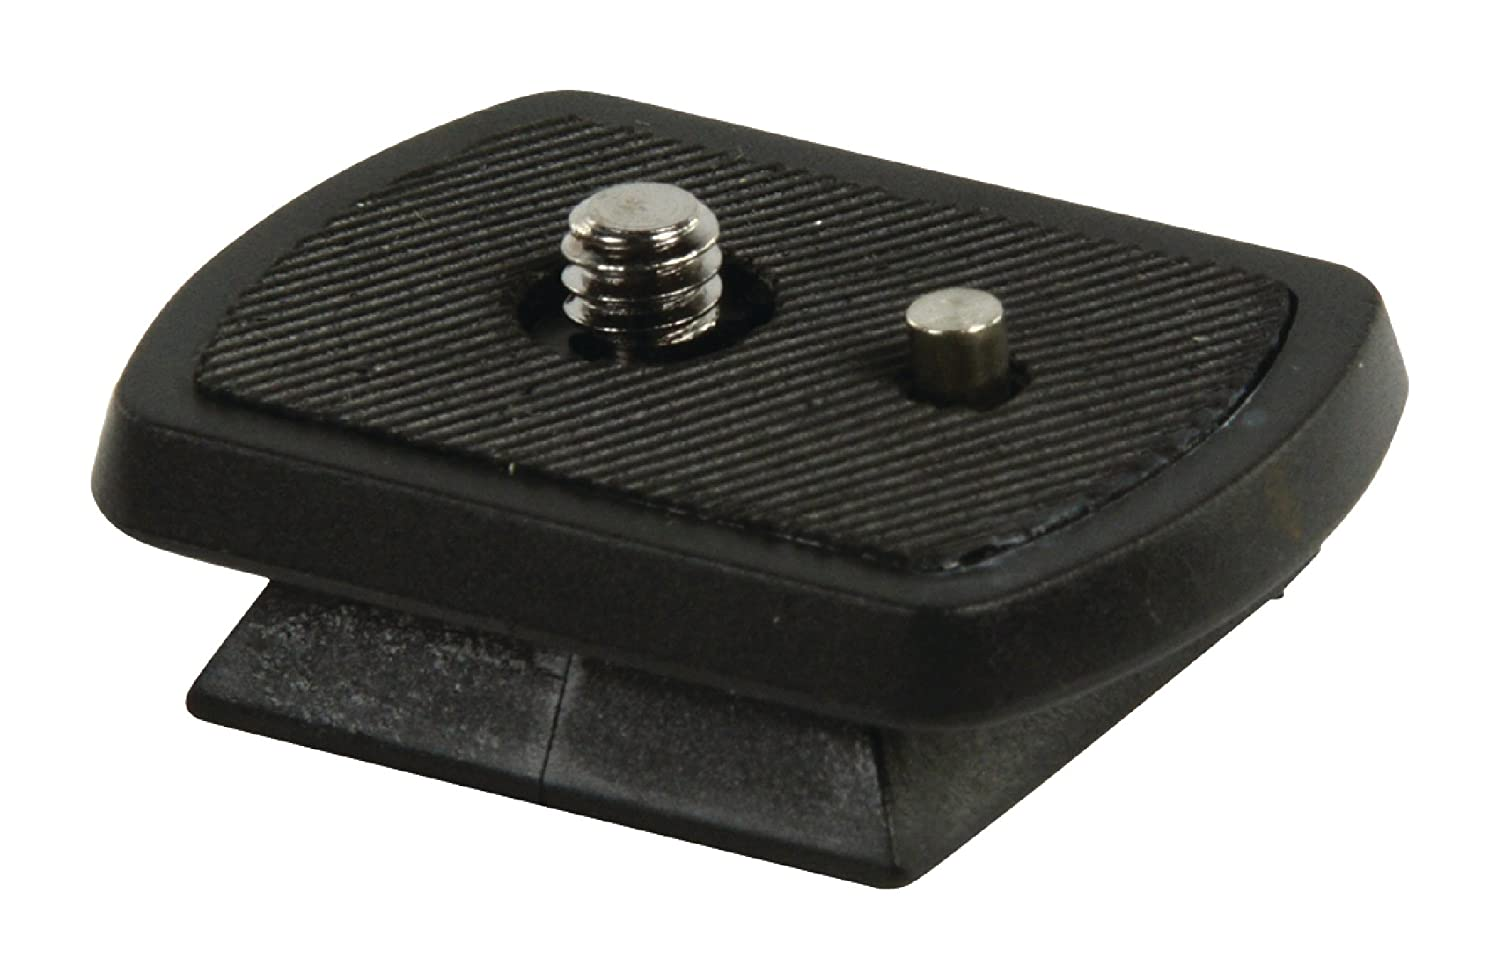 Camlink cl-qr17/Quick Release Plate for Tripod CL-TP1700